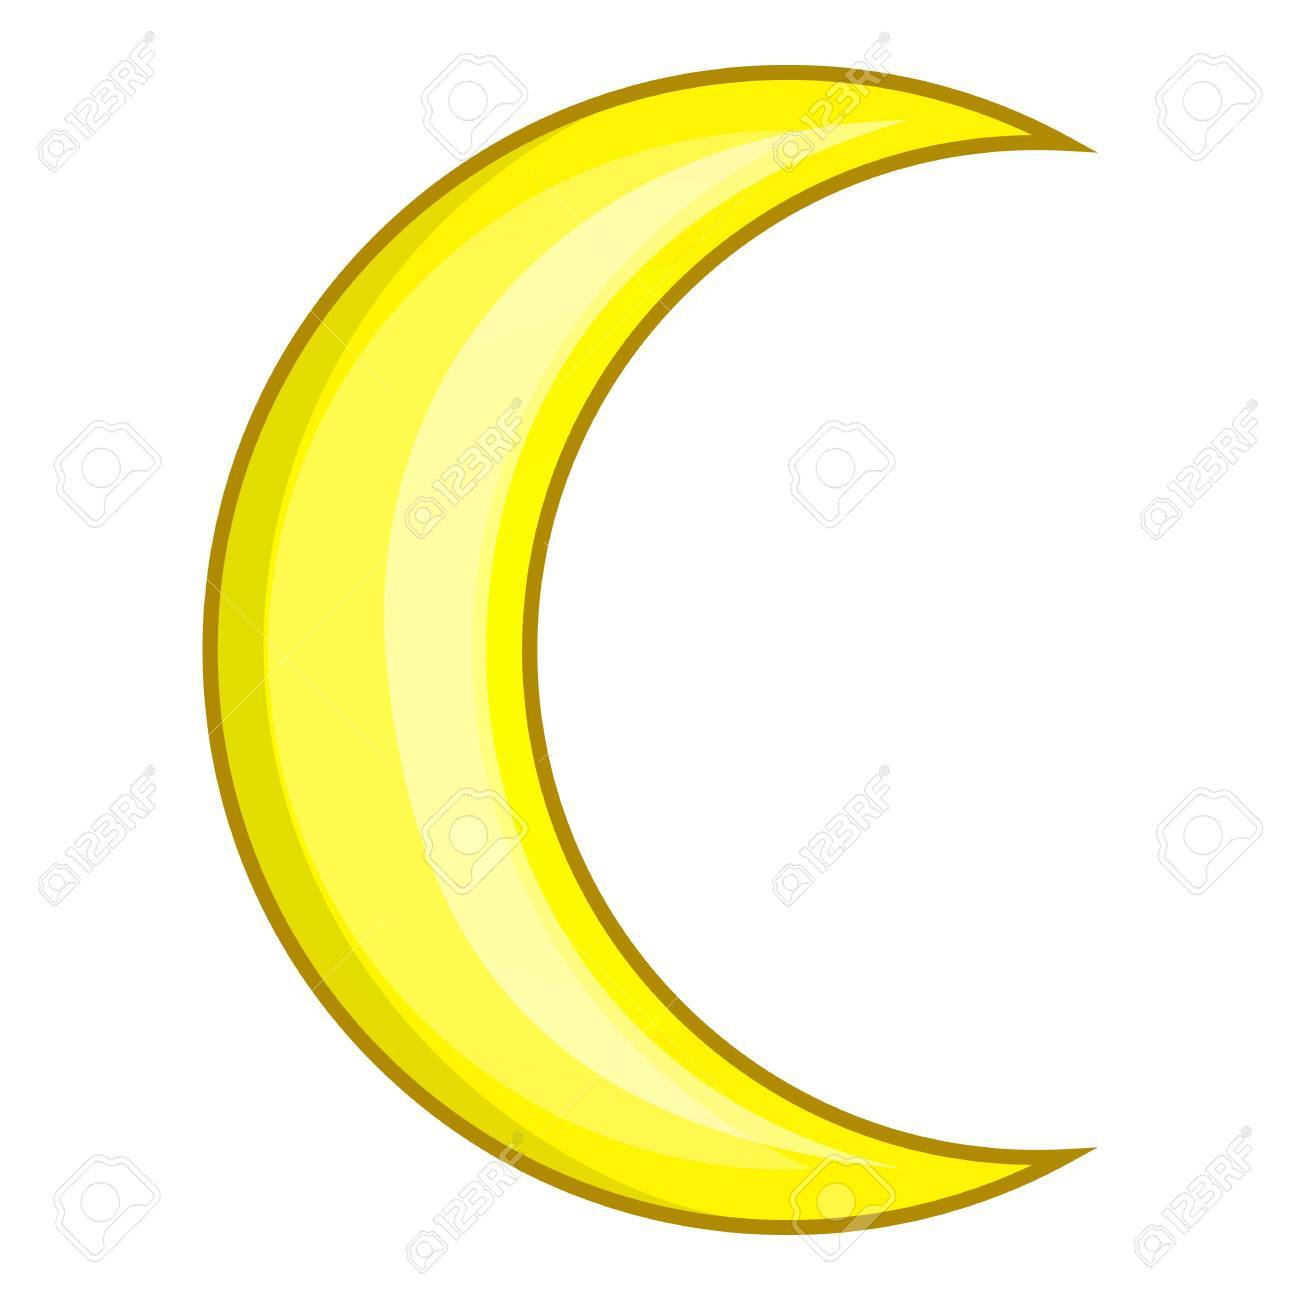 crescent moon icon cartoon illustration of moon vector icon royalty free cliparts vectors and stock illustration image 67219939 crescent moon icon cartoon illustration of moon vector icon